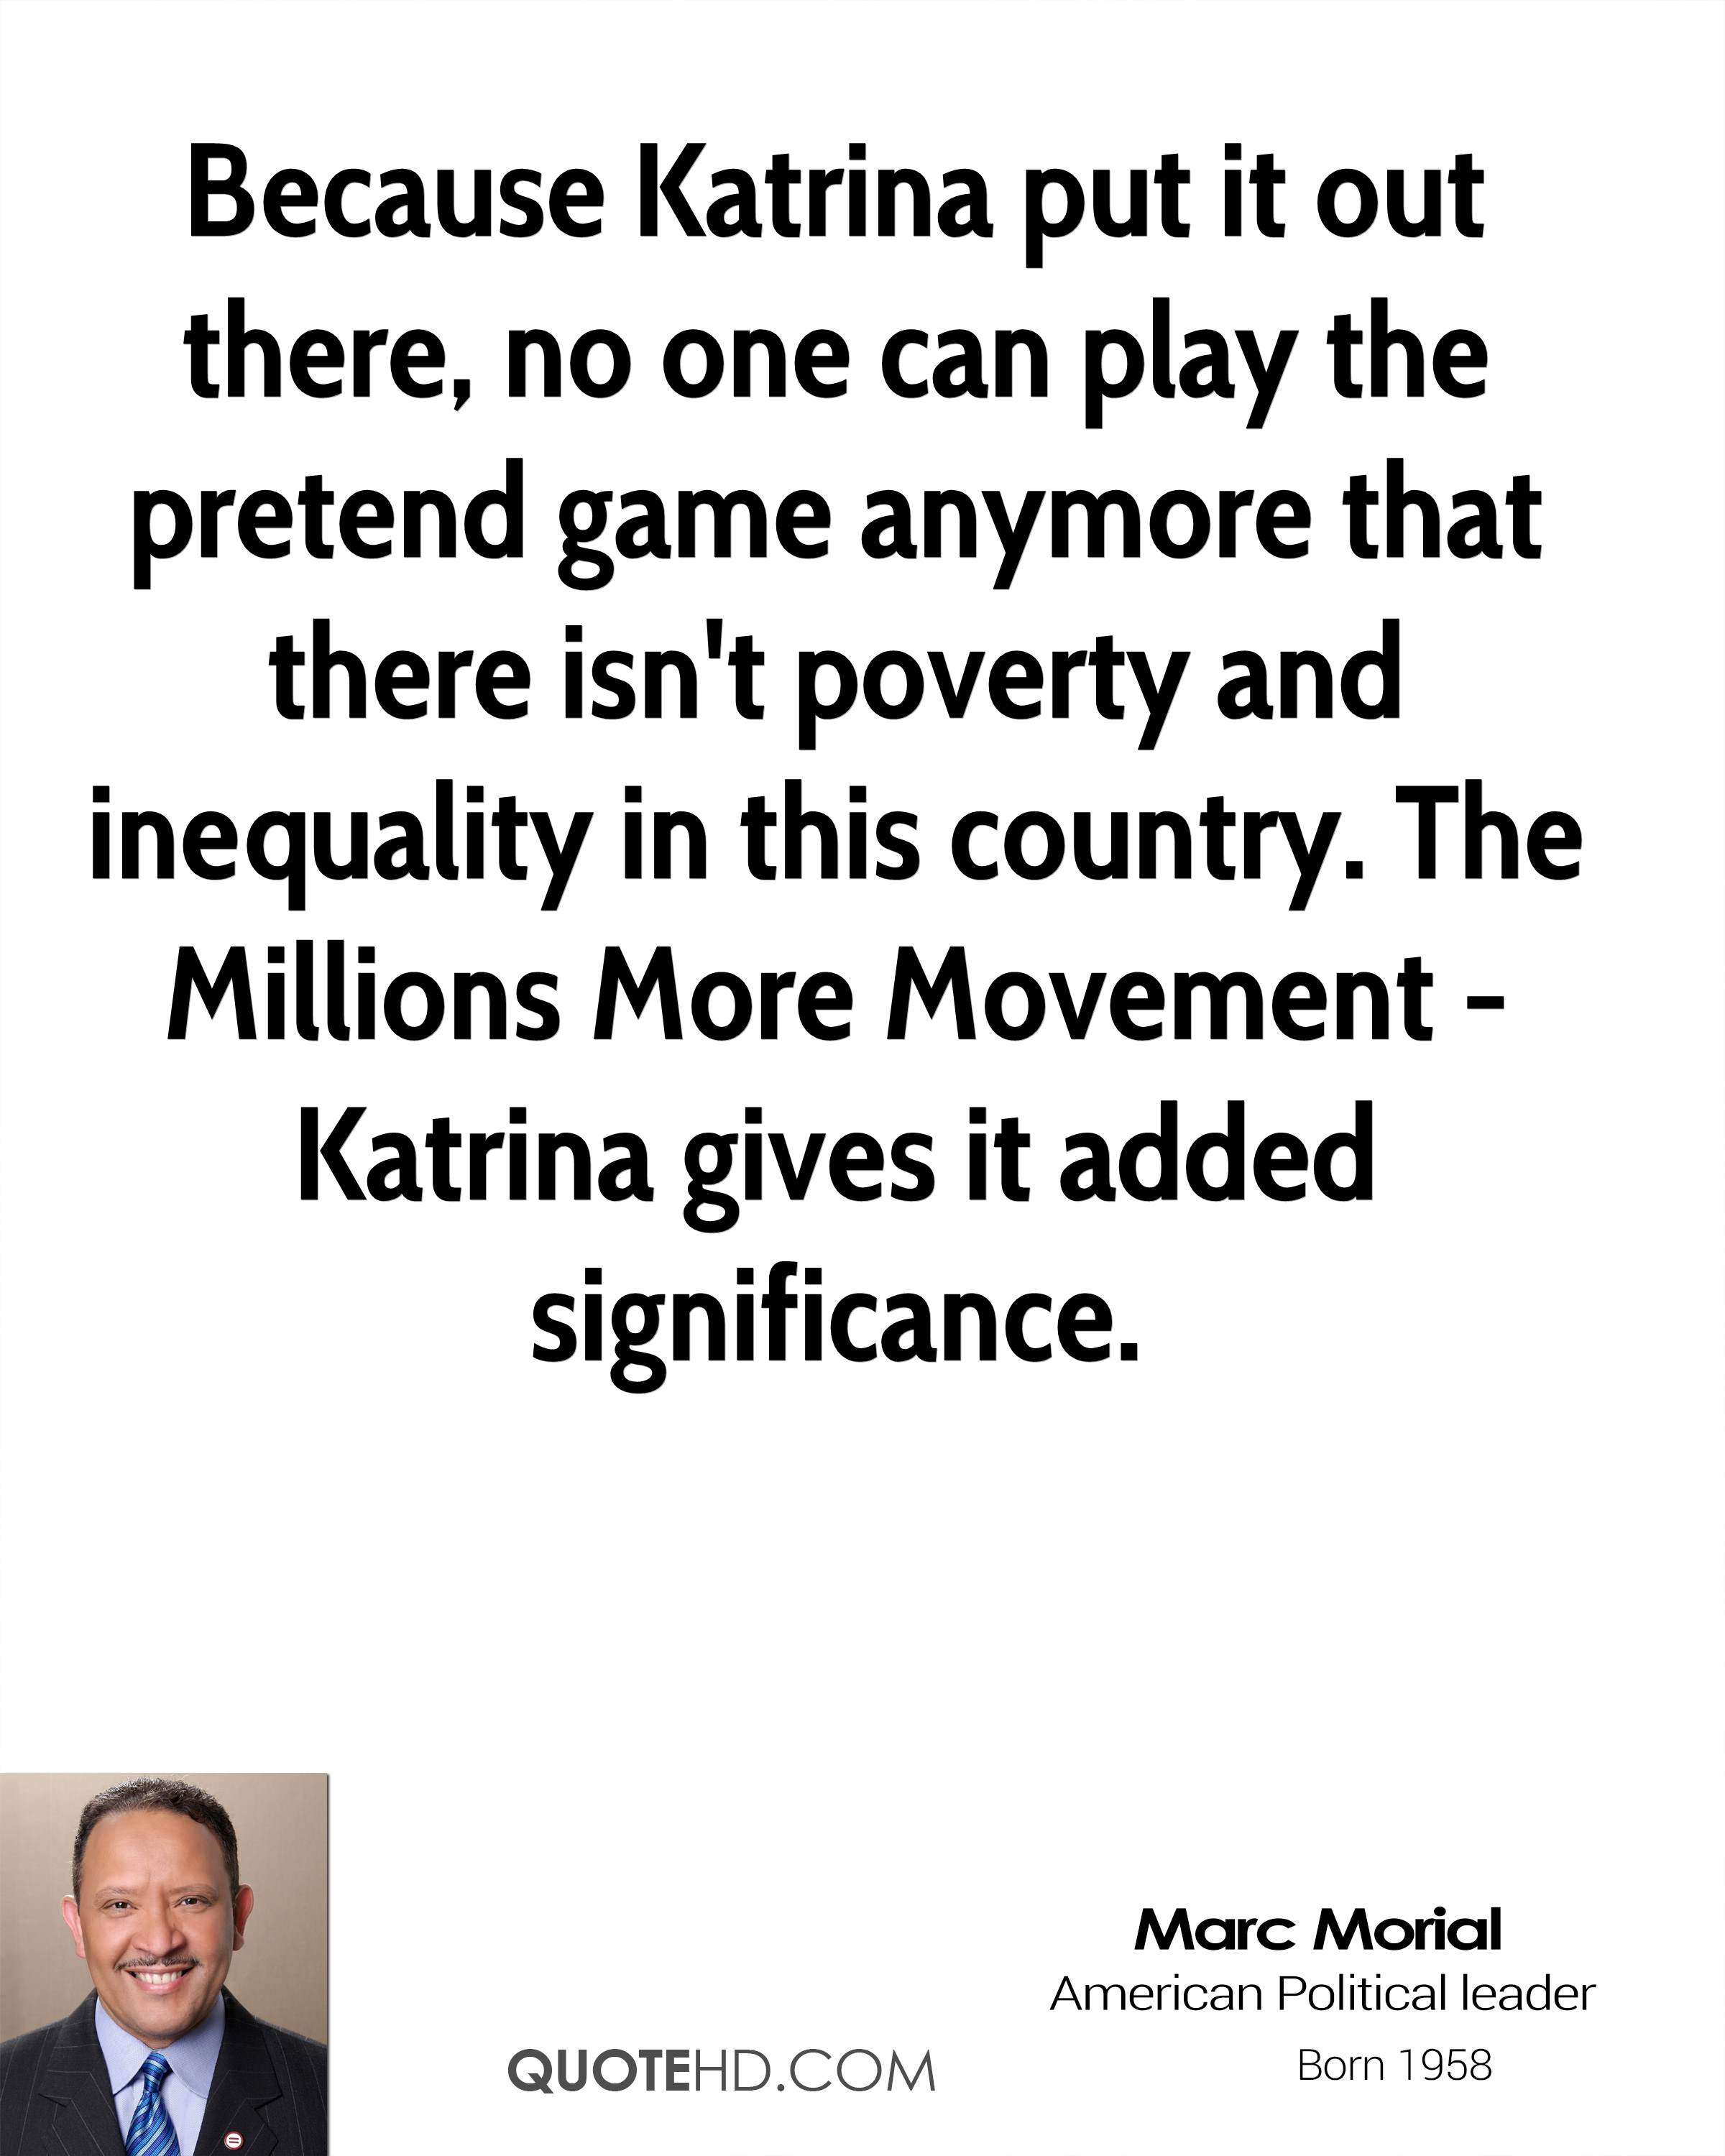 Because Katrina put it out there, no one can play the pretend game anymore that there isn't poverty and inequality in this country. The Millions More Movement - Katrina gives it added significance.